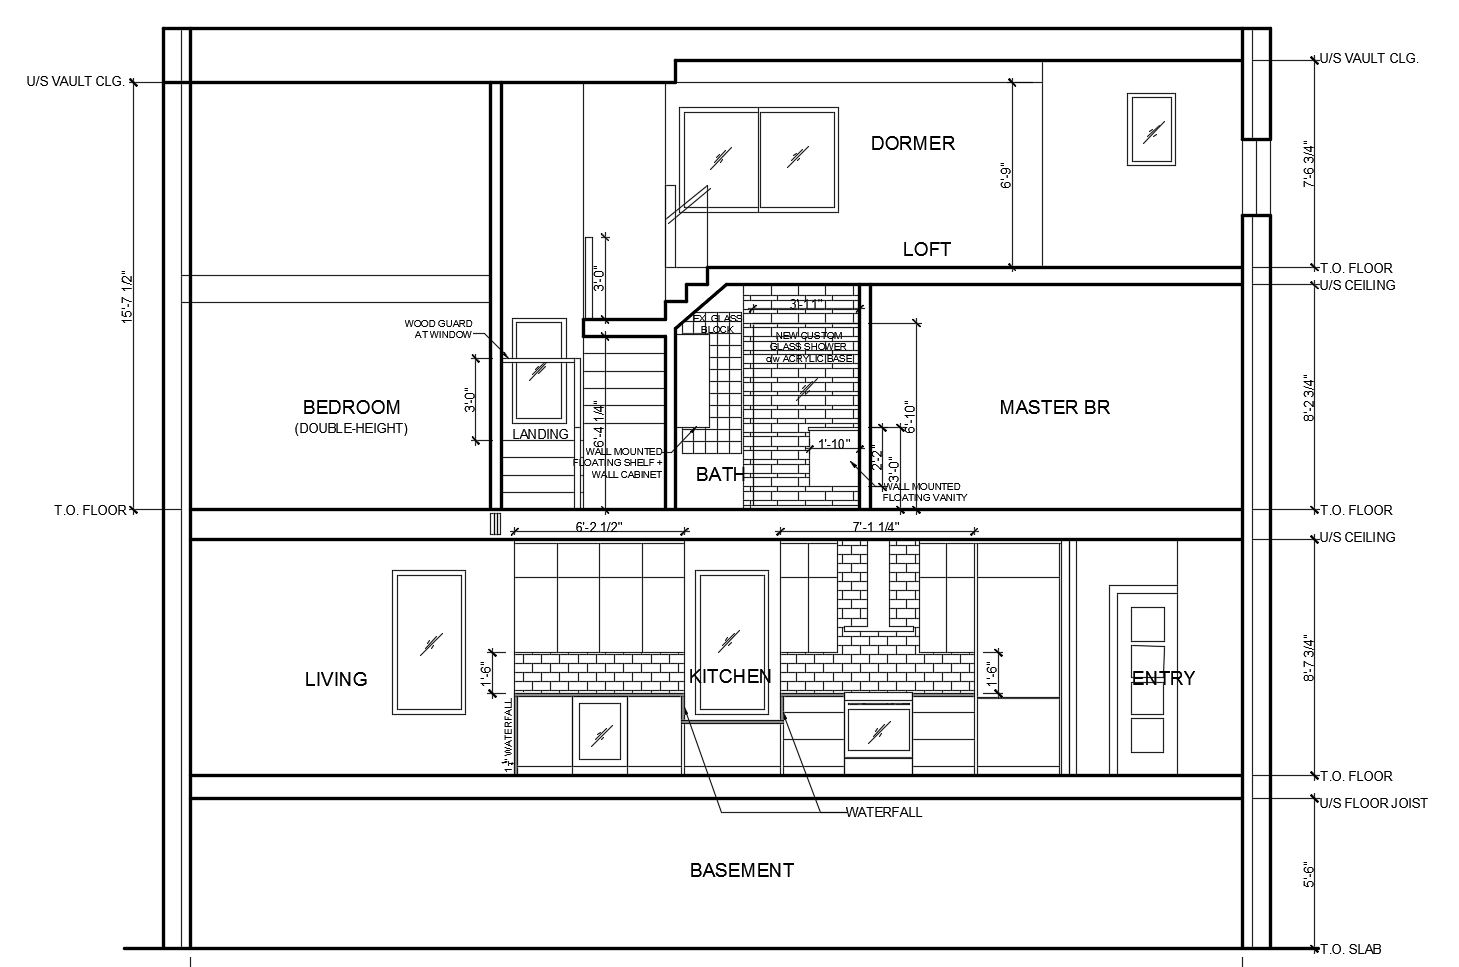 117 Waverly - Building Section